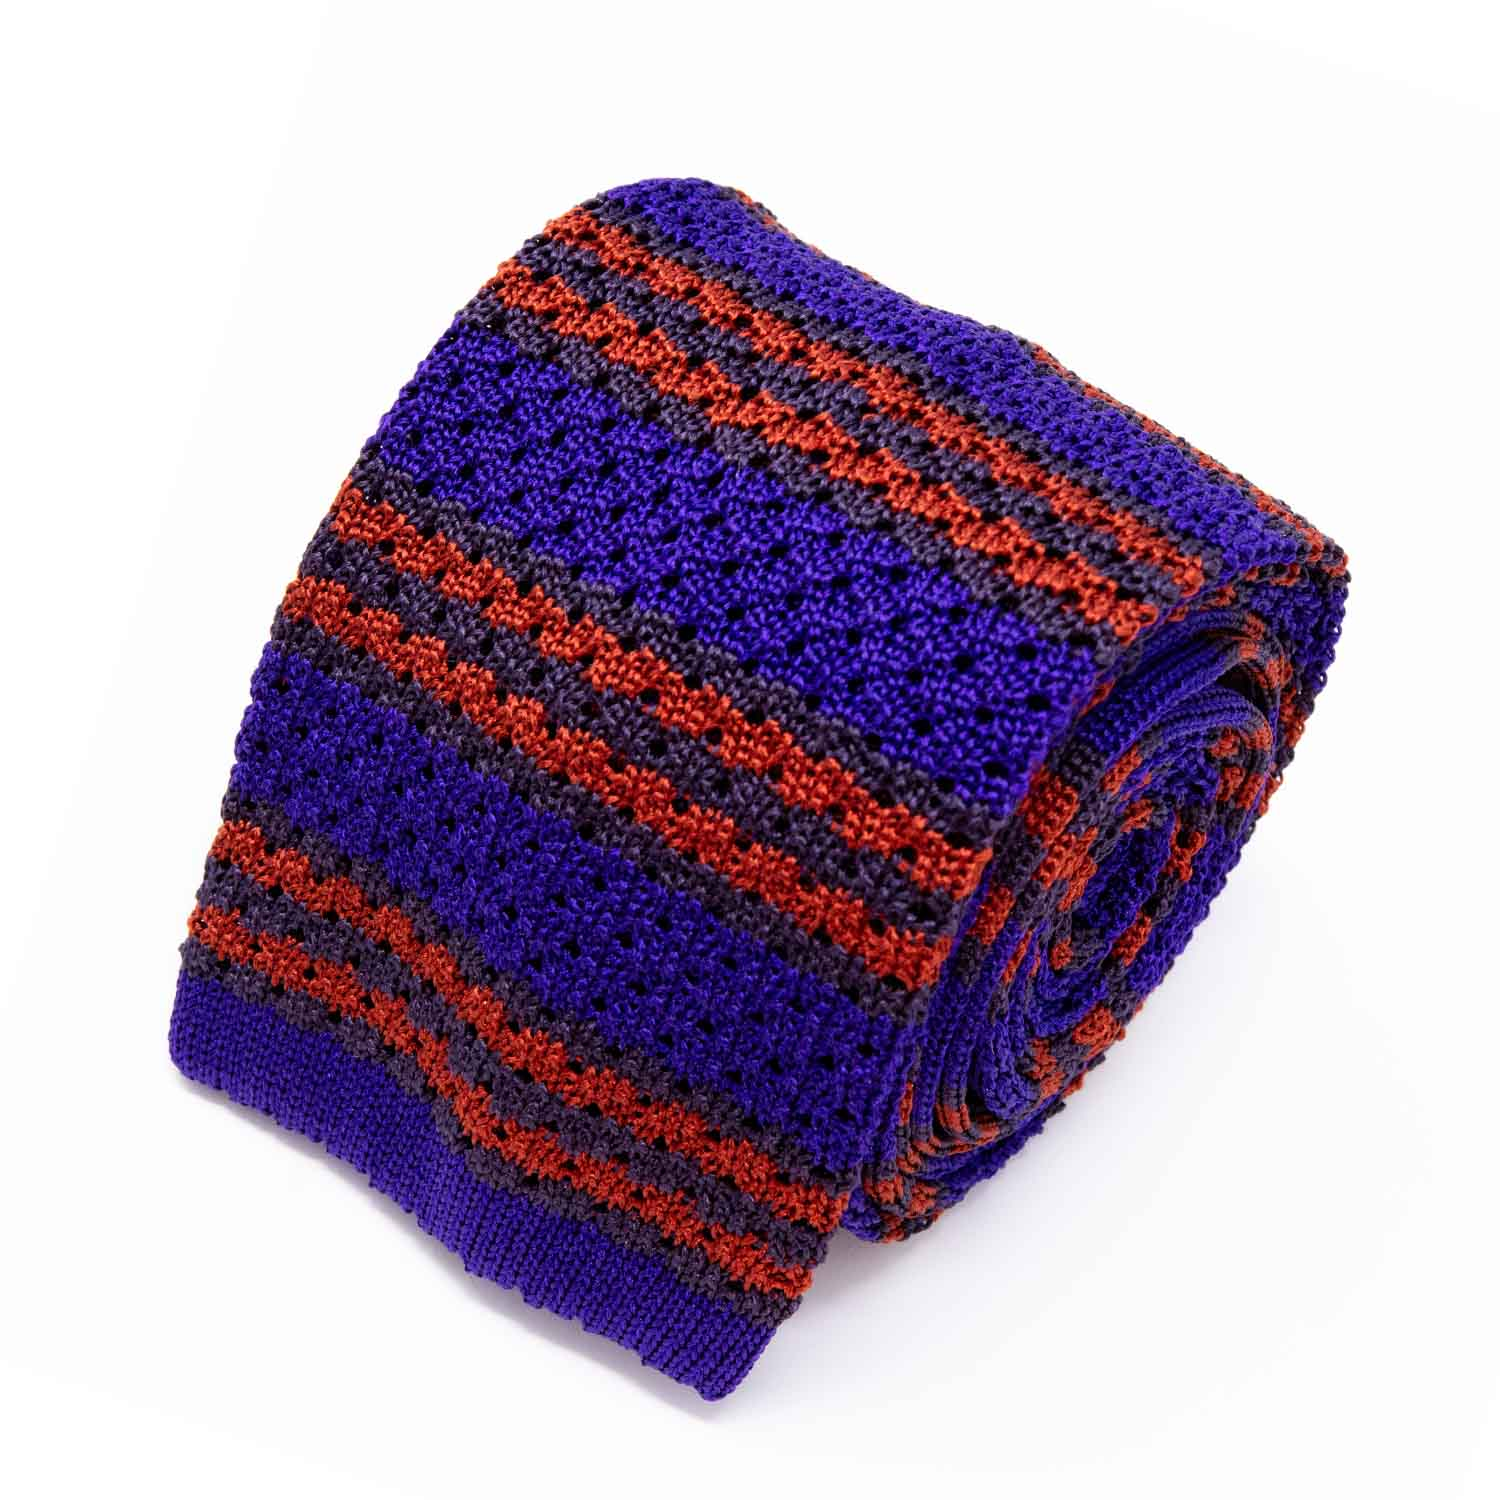 Purple and Orange Striped Zig Zag Knitted Tie - serafinesilk